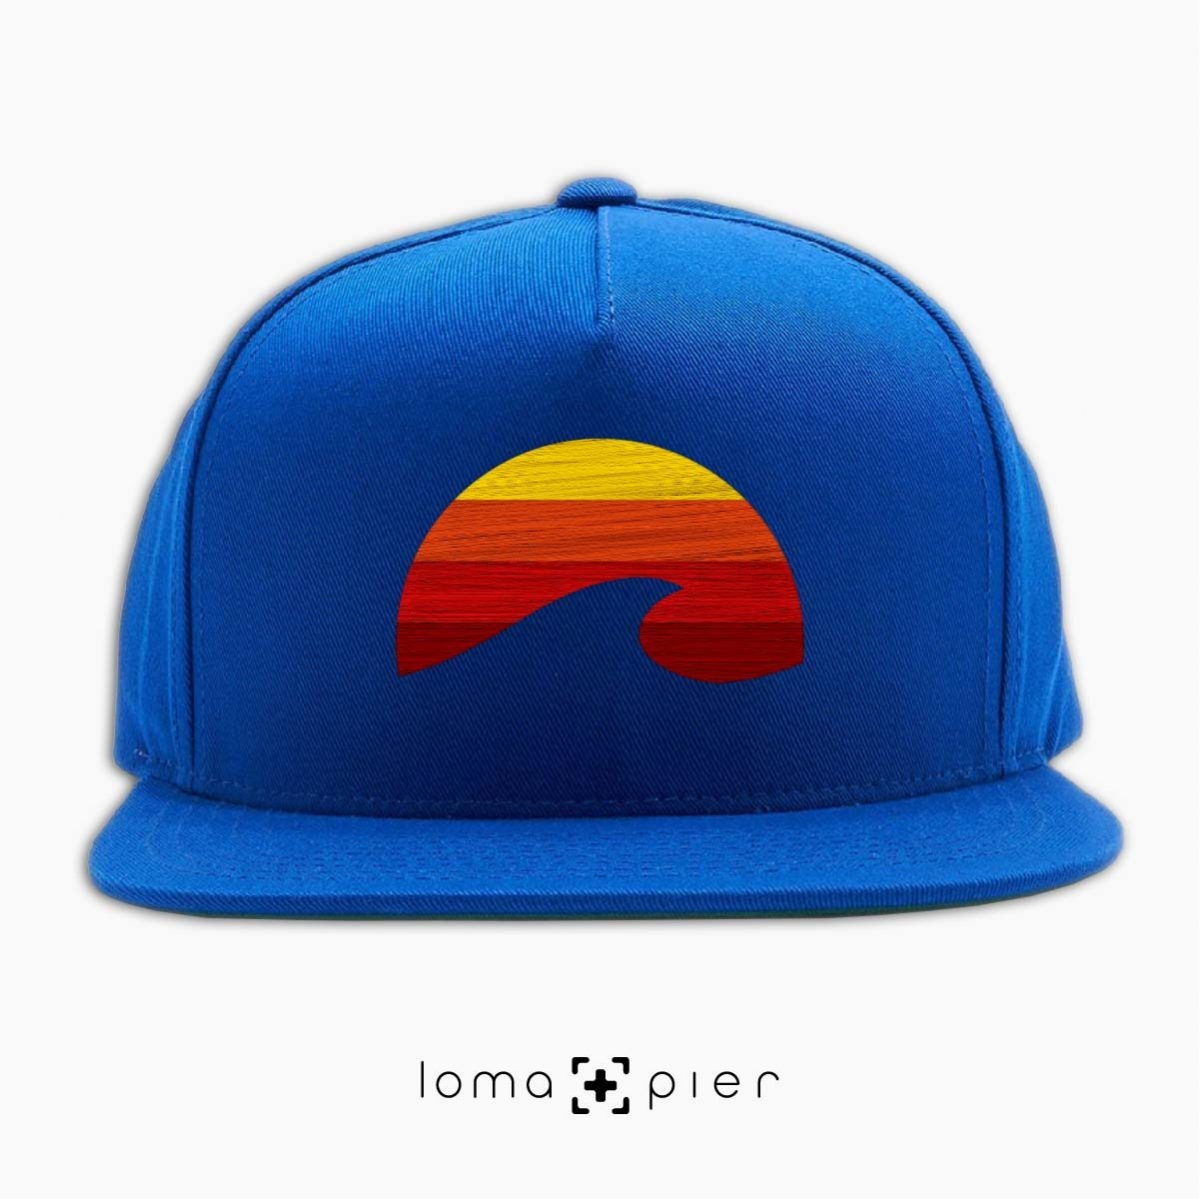 PACIFIC SUN hat in royal blue by loma+pier hat store